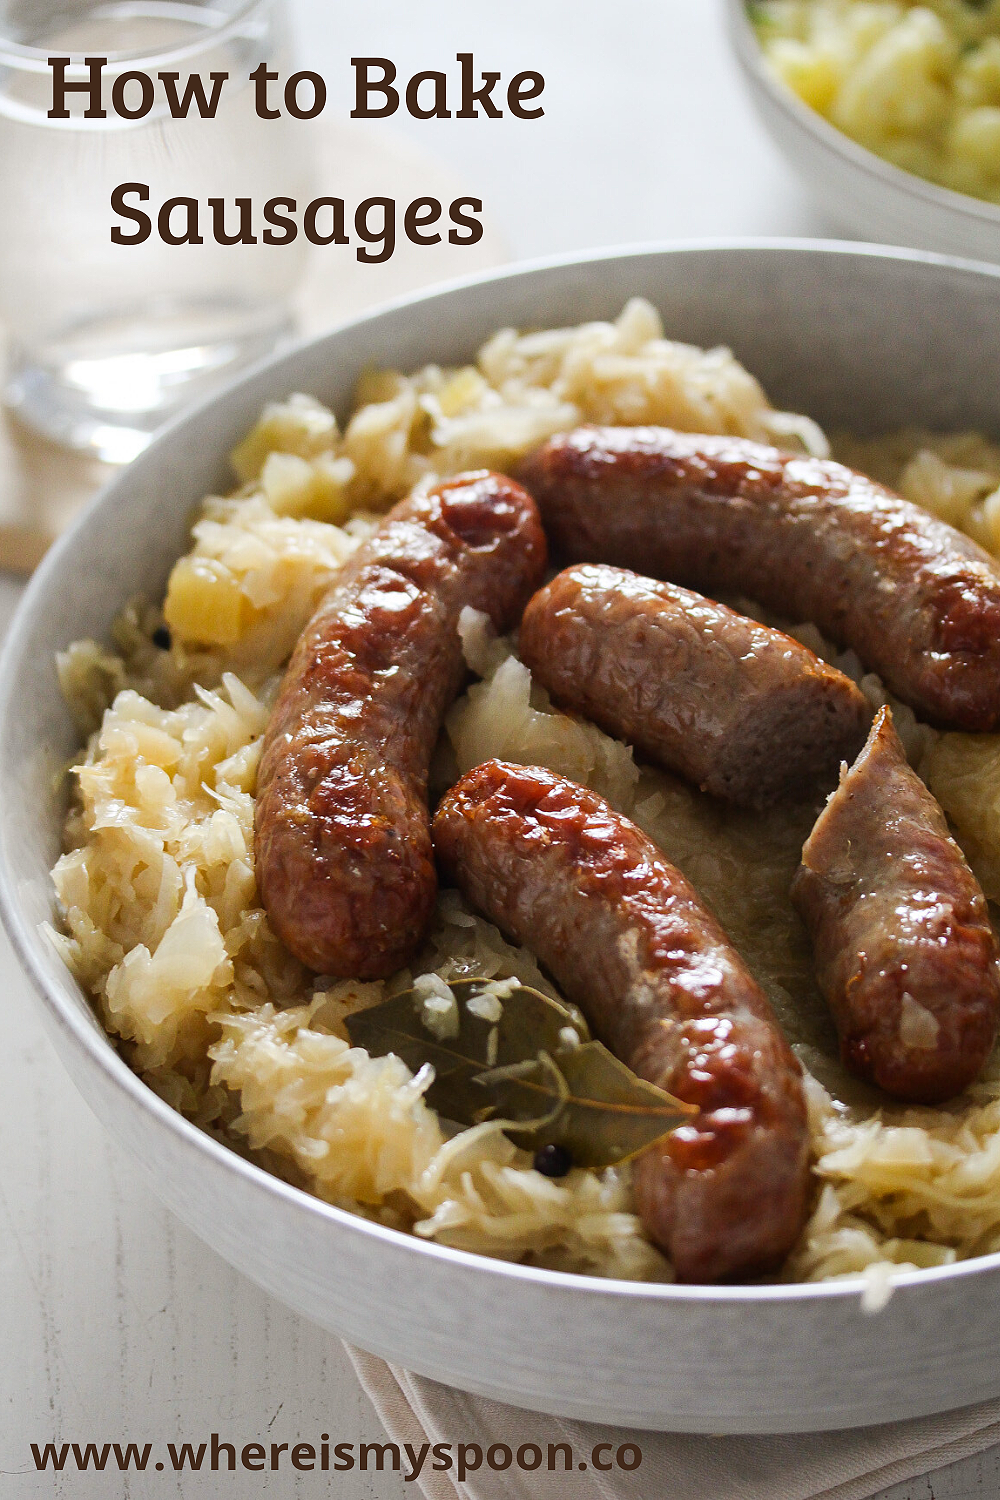 How To Cook Brats In The Oven Recipe Sausages In The Oven How To Cook Sausage Sausage Bake